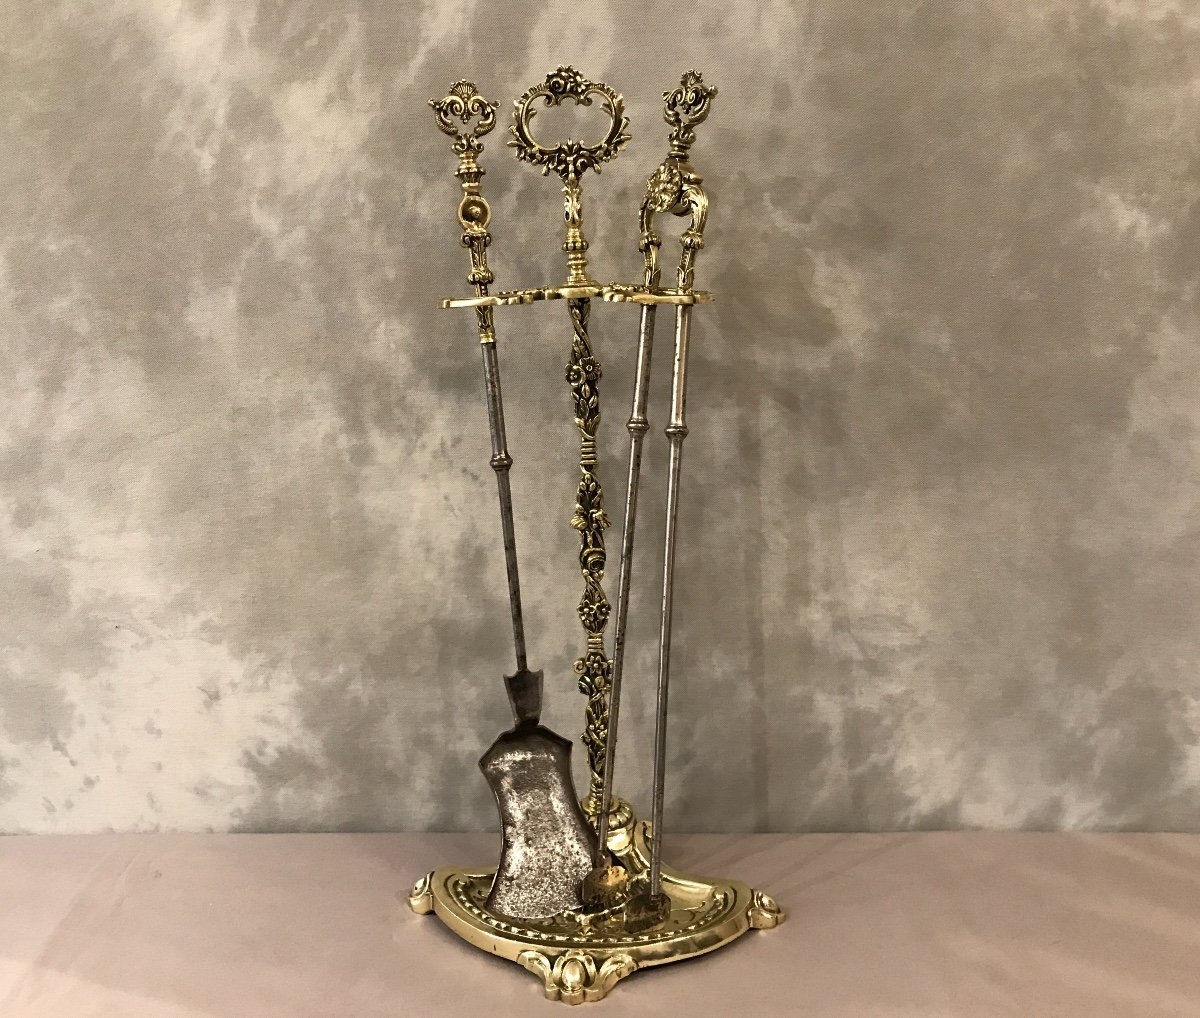 Large Antique Fireplace Servant In Flowered Bronze From The 19th Louis XVI Napoleon III